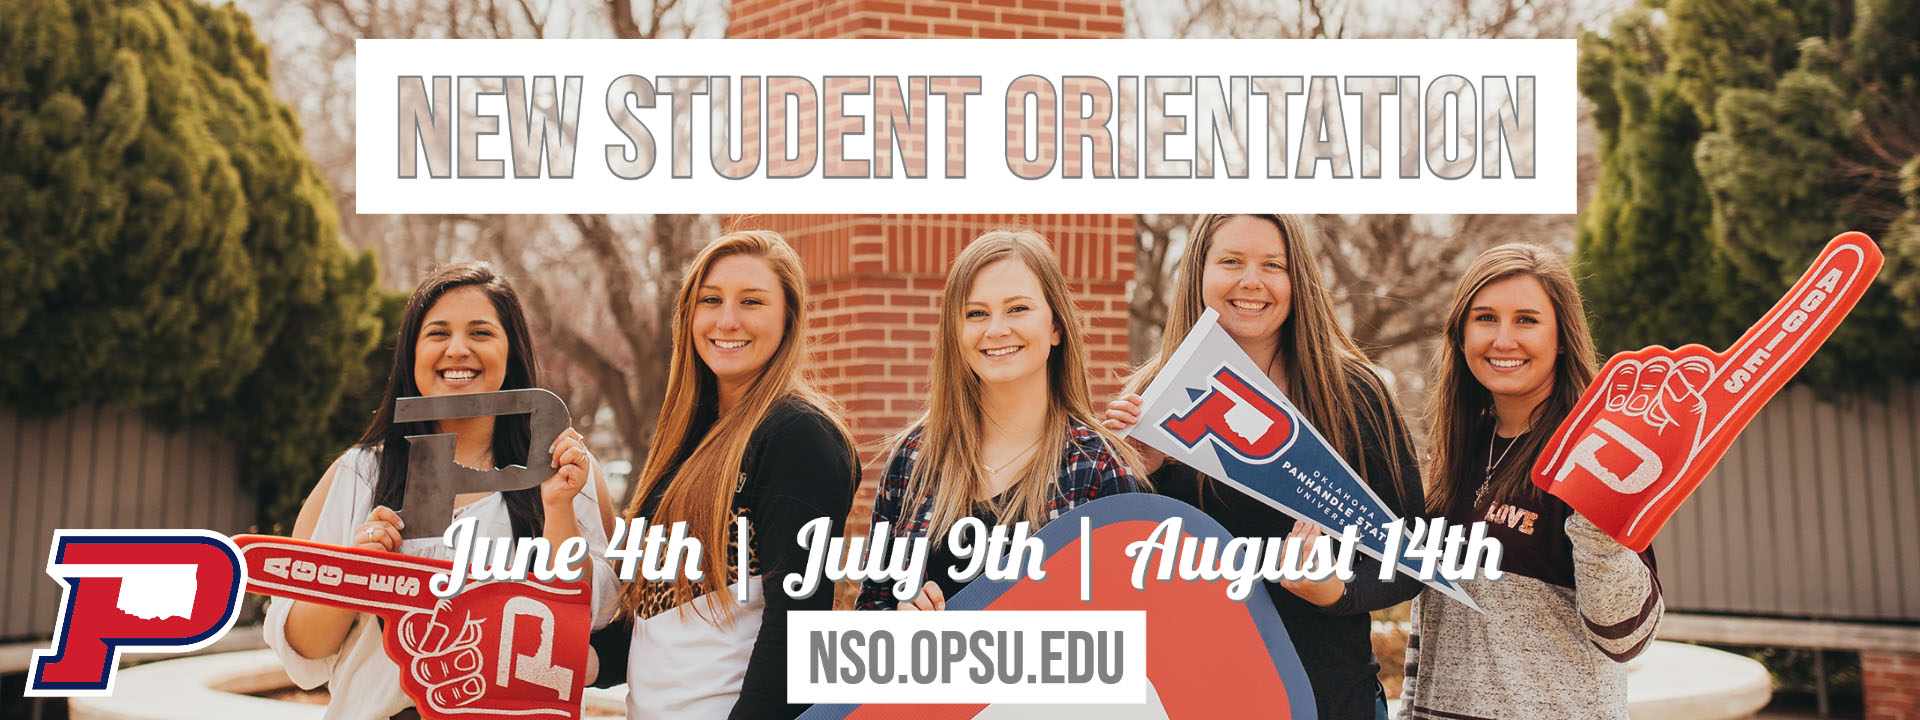 New Student Orientation June 4th, July 9th, August 14th